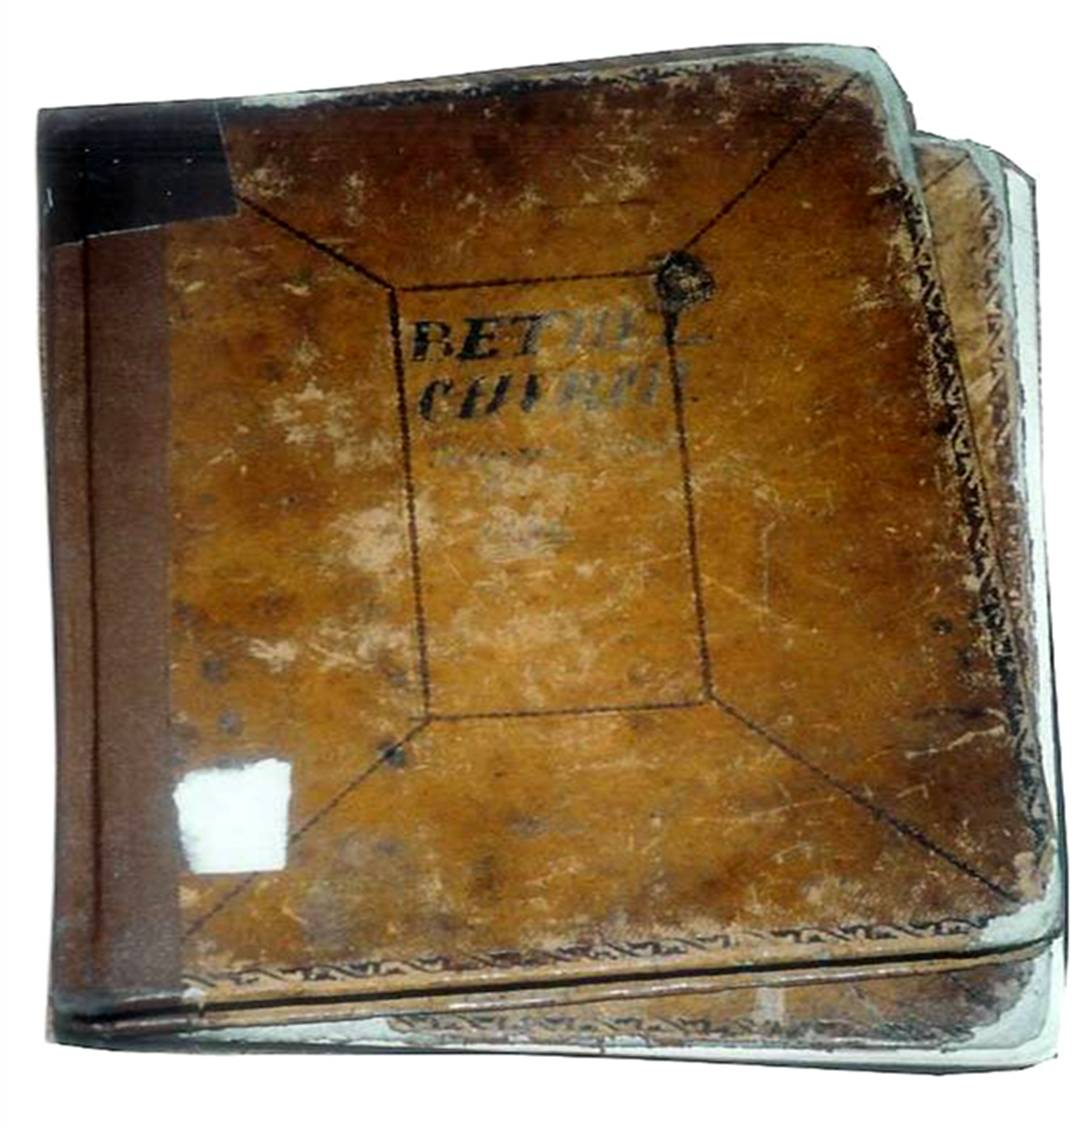 The original records of the first fifty years of Bethel Church were lost. Samuel McFall was elected a Ruling Elder and Clerk of Session, after which he purchased a Minutes of the Session book and a Church Register.